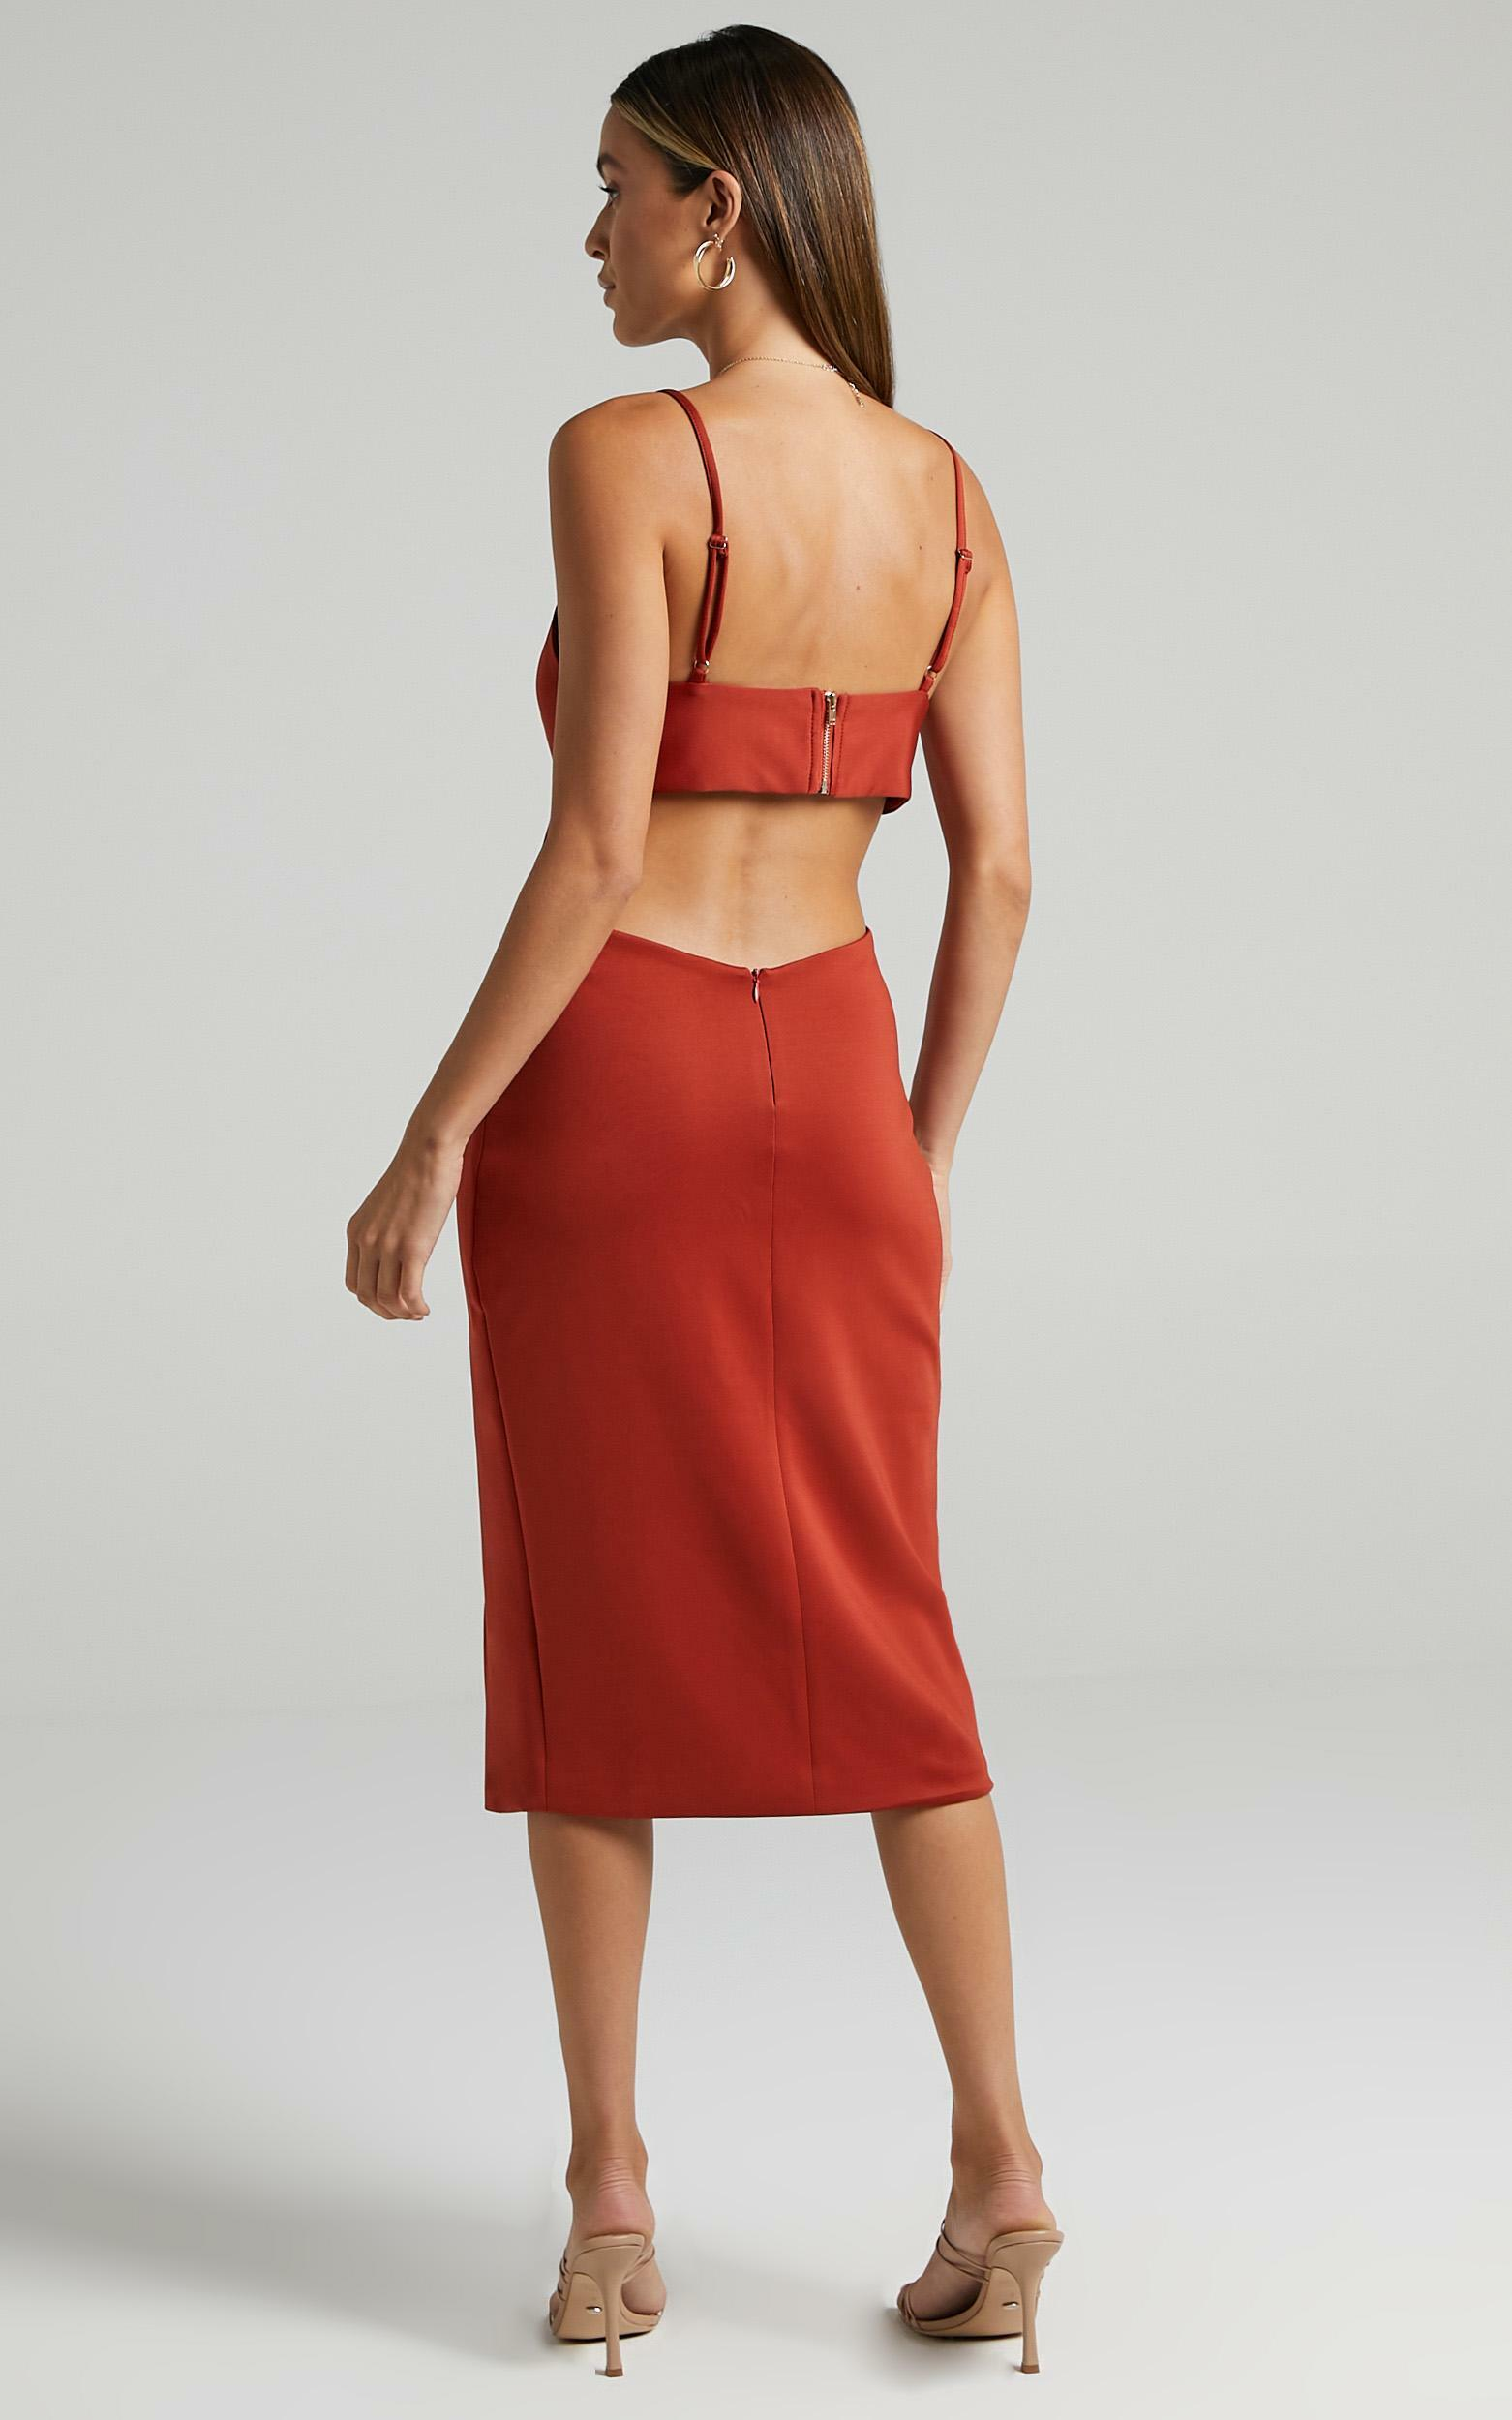 Odette Open Back Midi Dress in rust - 6 (XS), Rust, hi-res image number null